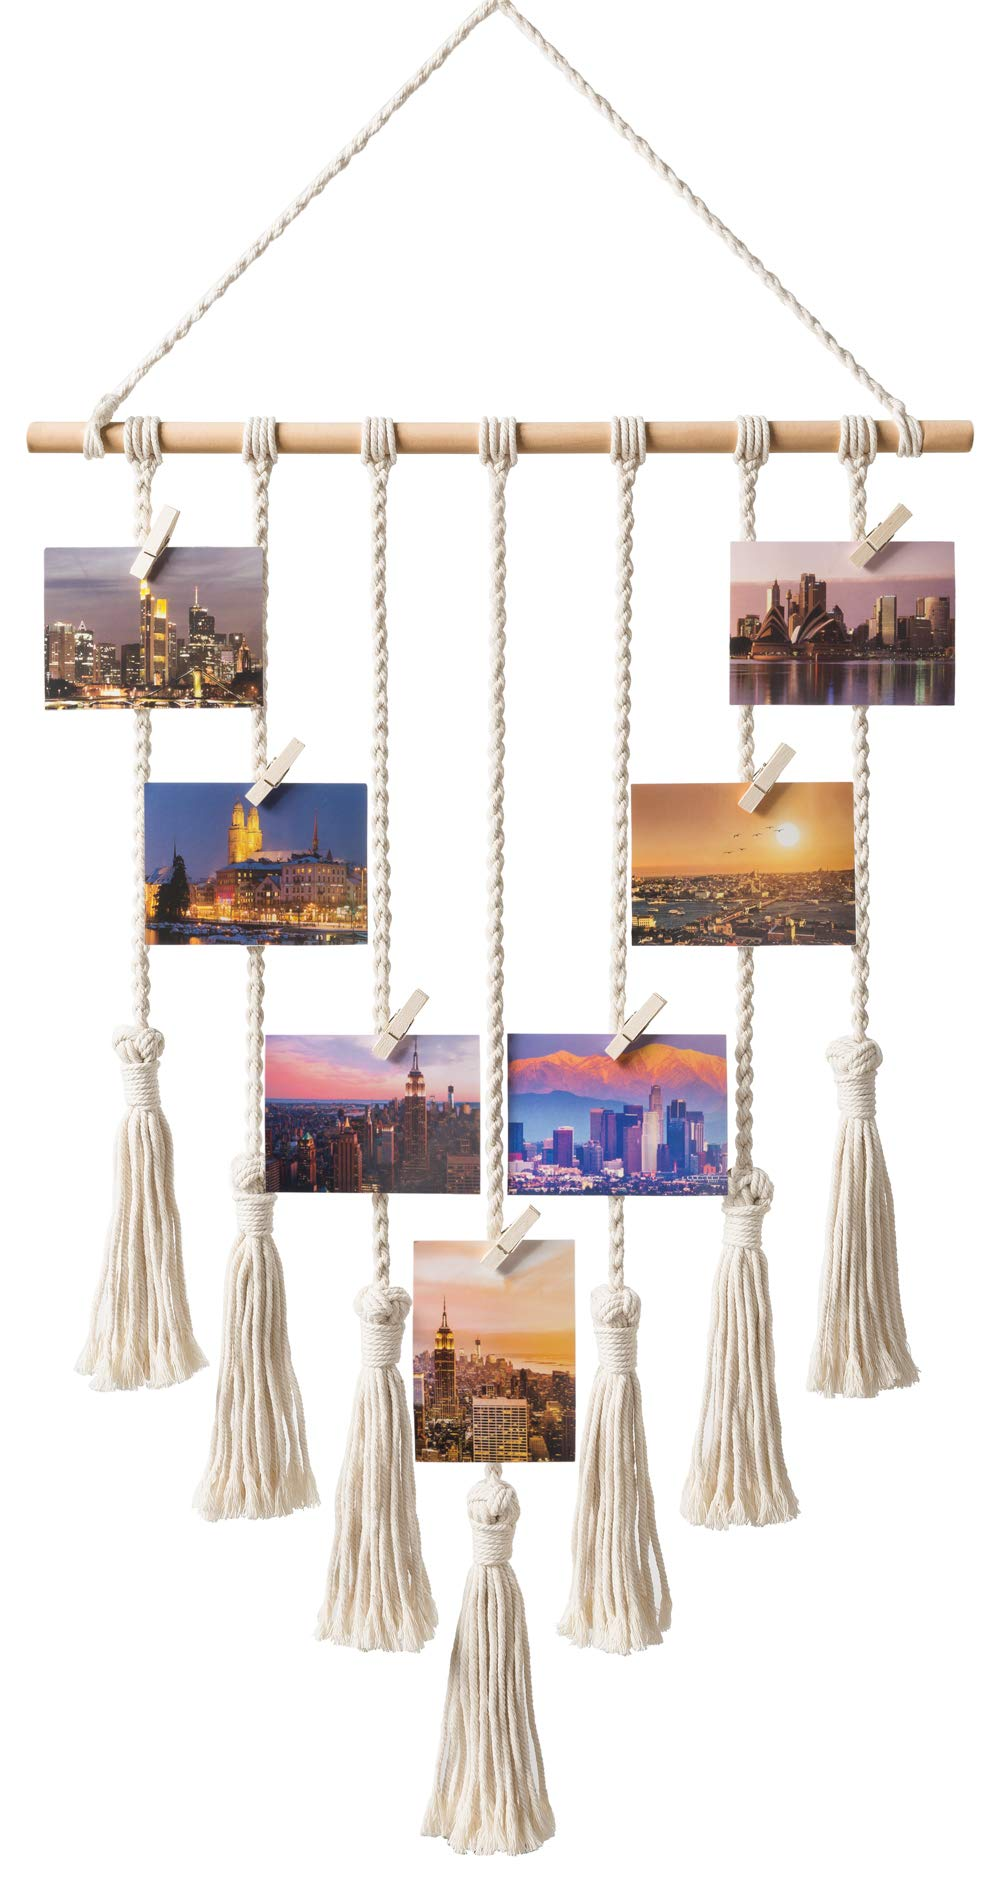 Mkono Hanging Photo Display Macrame Wall Hanging Pictures Organizer Boho Home Decor, with 25 Wood Clips by Mkono